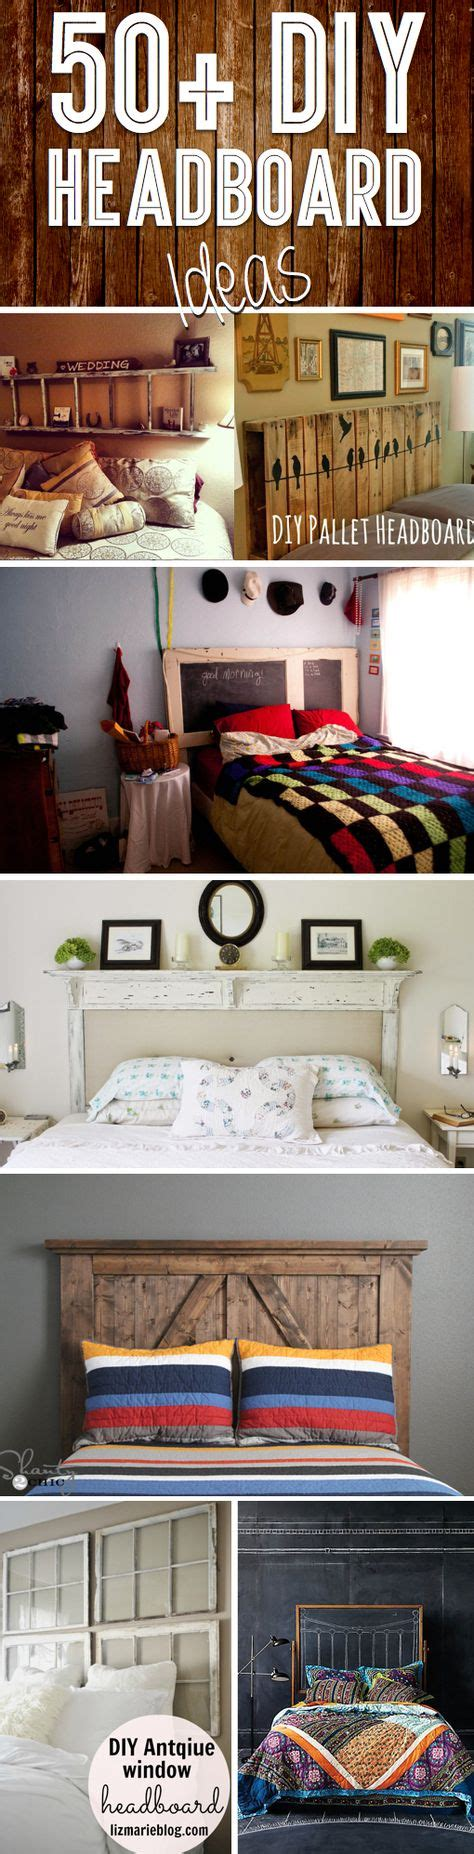 ideas to spice up the bedroom for him 1000 headboard ideas on pinterest headboards cool